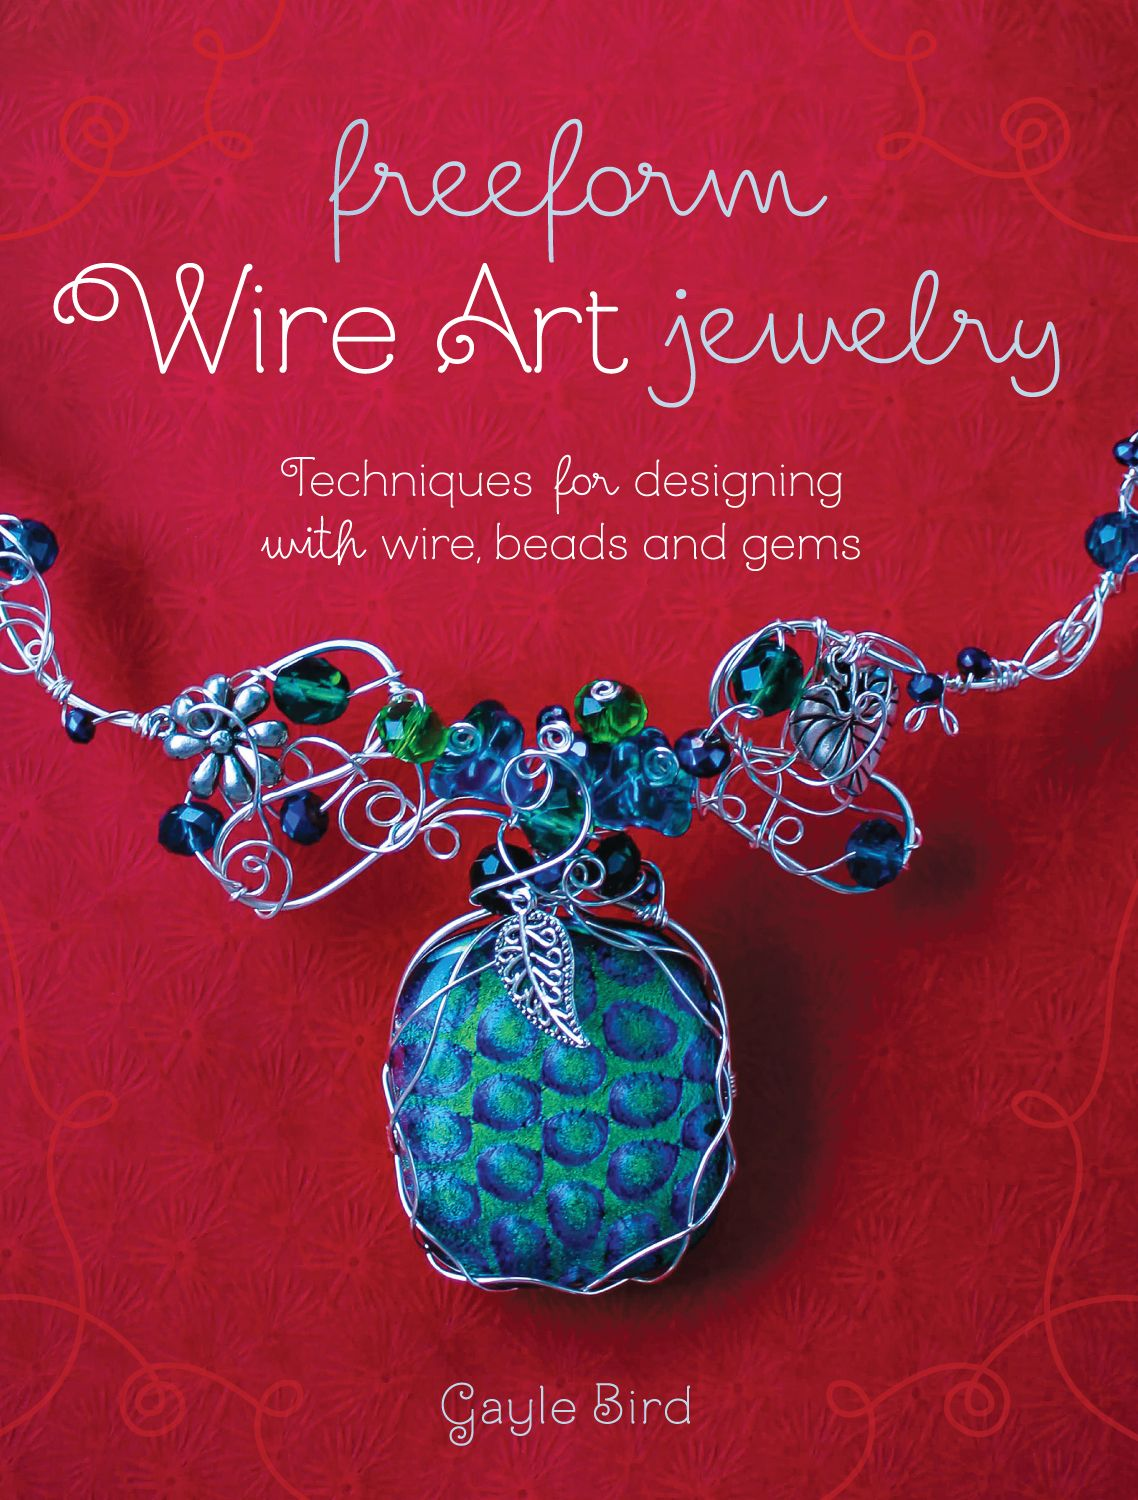 Enter to win a freeform wire art jewelry book get a free enter to win a freeform wire art jewelry book get a free tutorial solutioingenieria Images